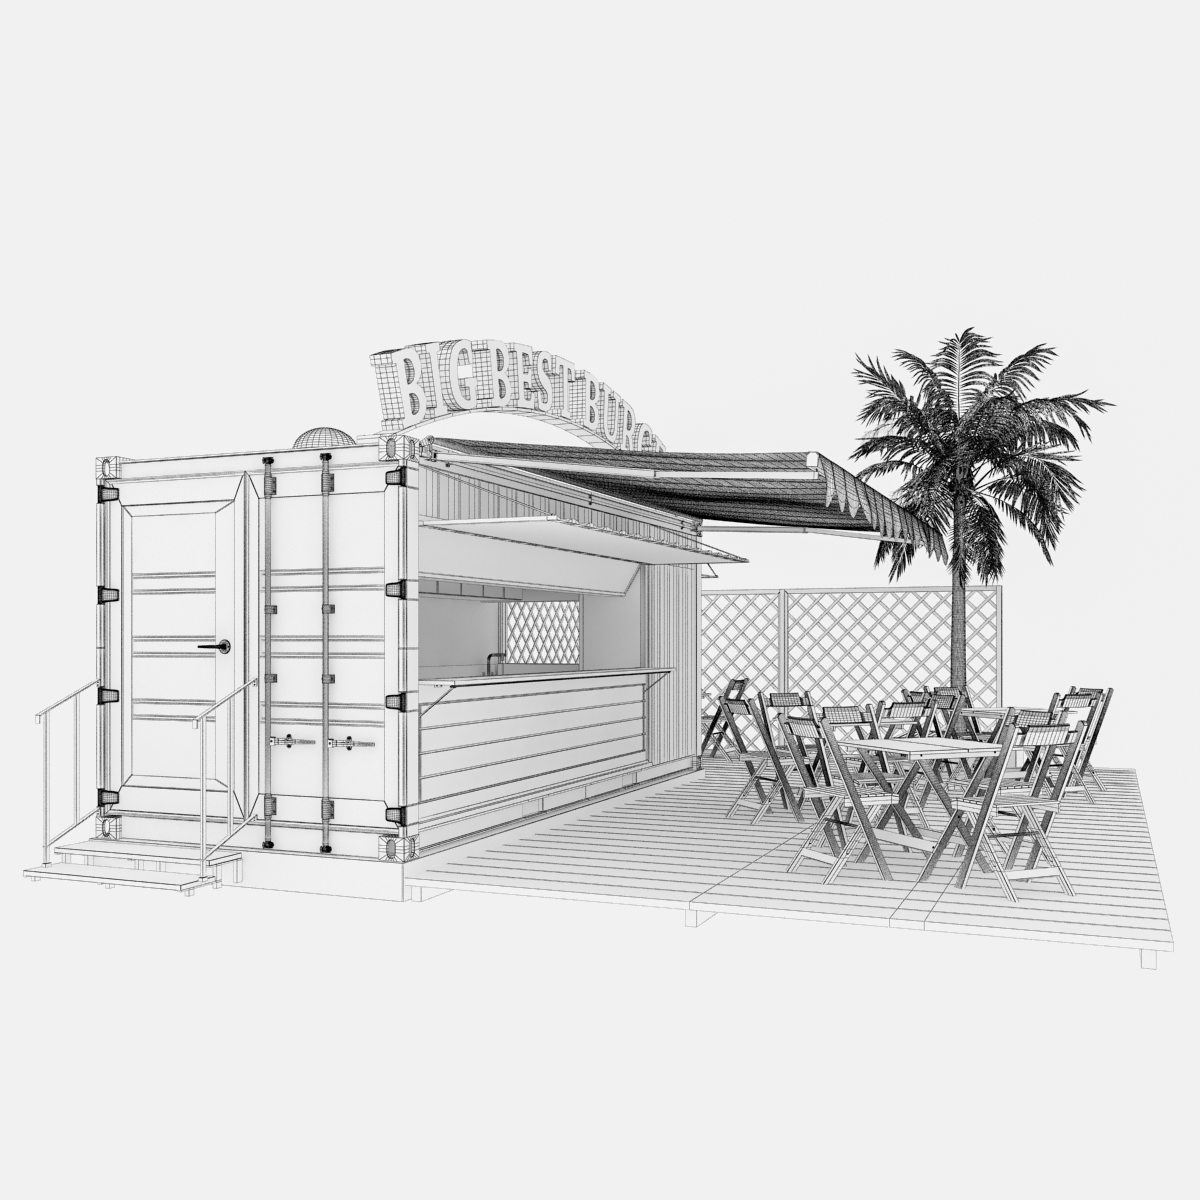 shipping container food stand 3d model max fbx ma mb texture obj 278564